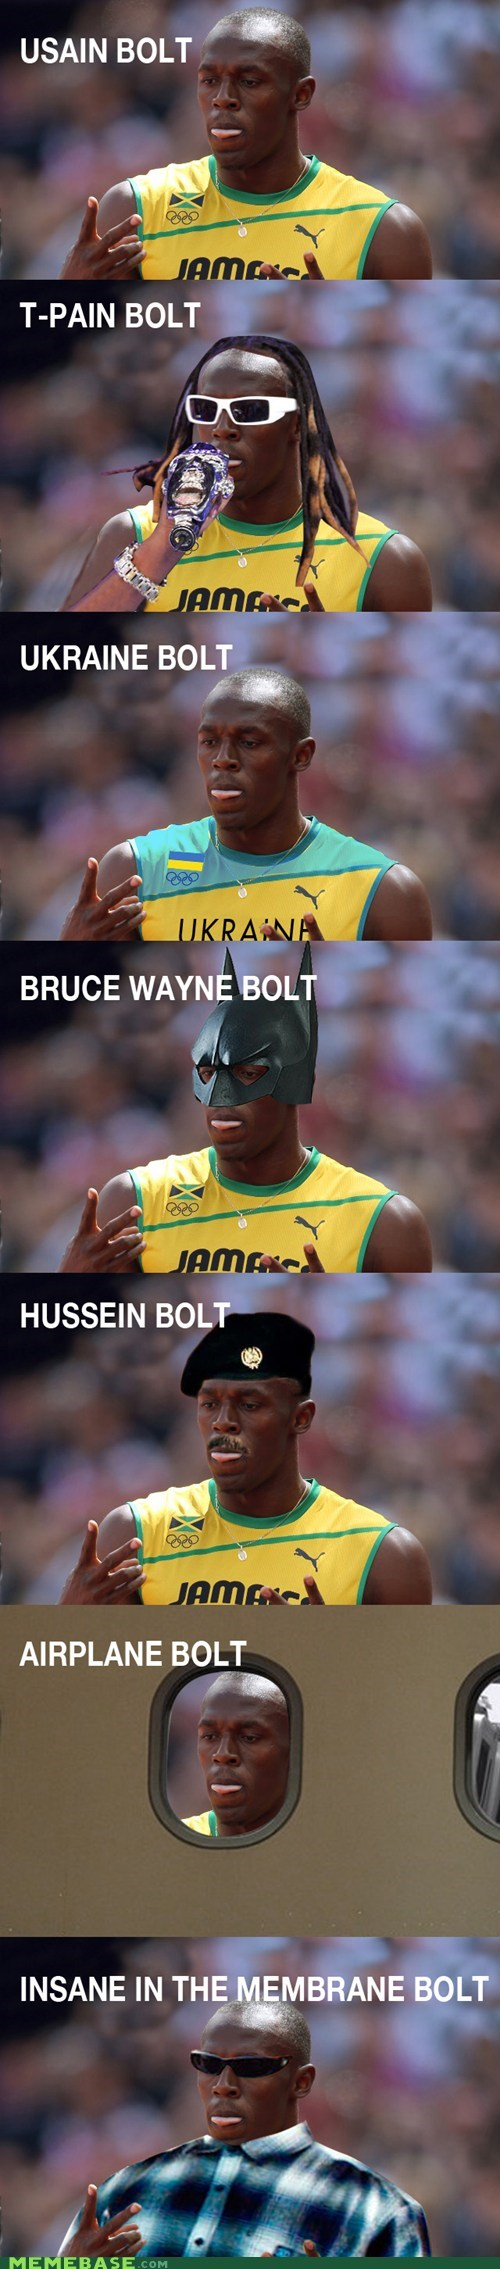 olympics photoshop puns t pain usain bolt - 6487134976